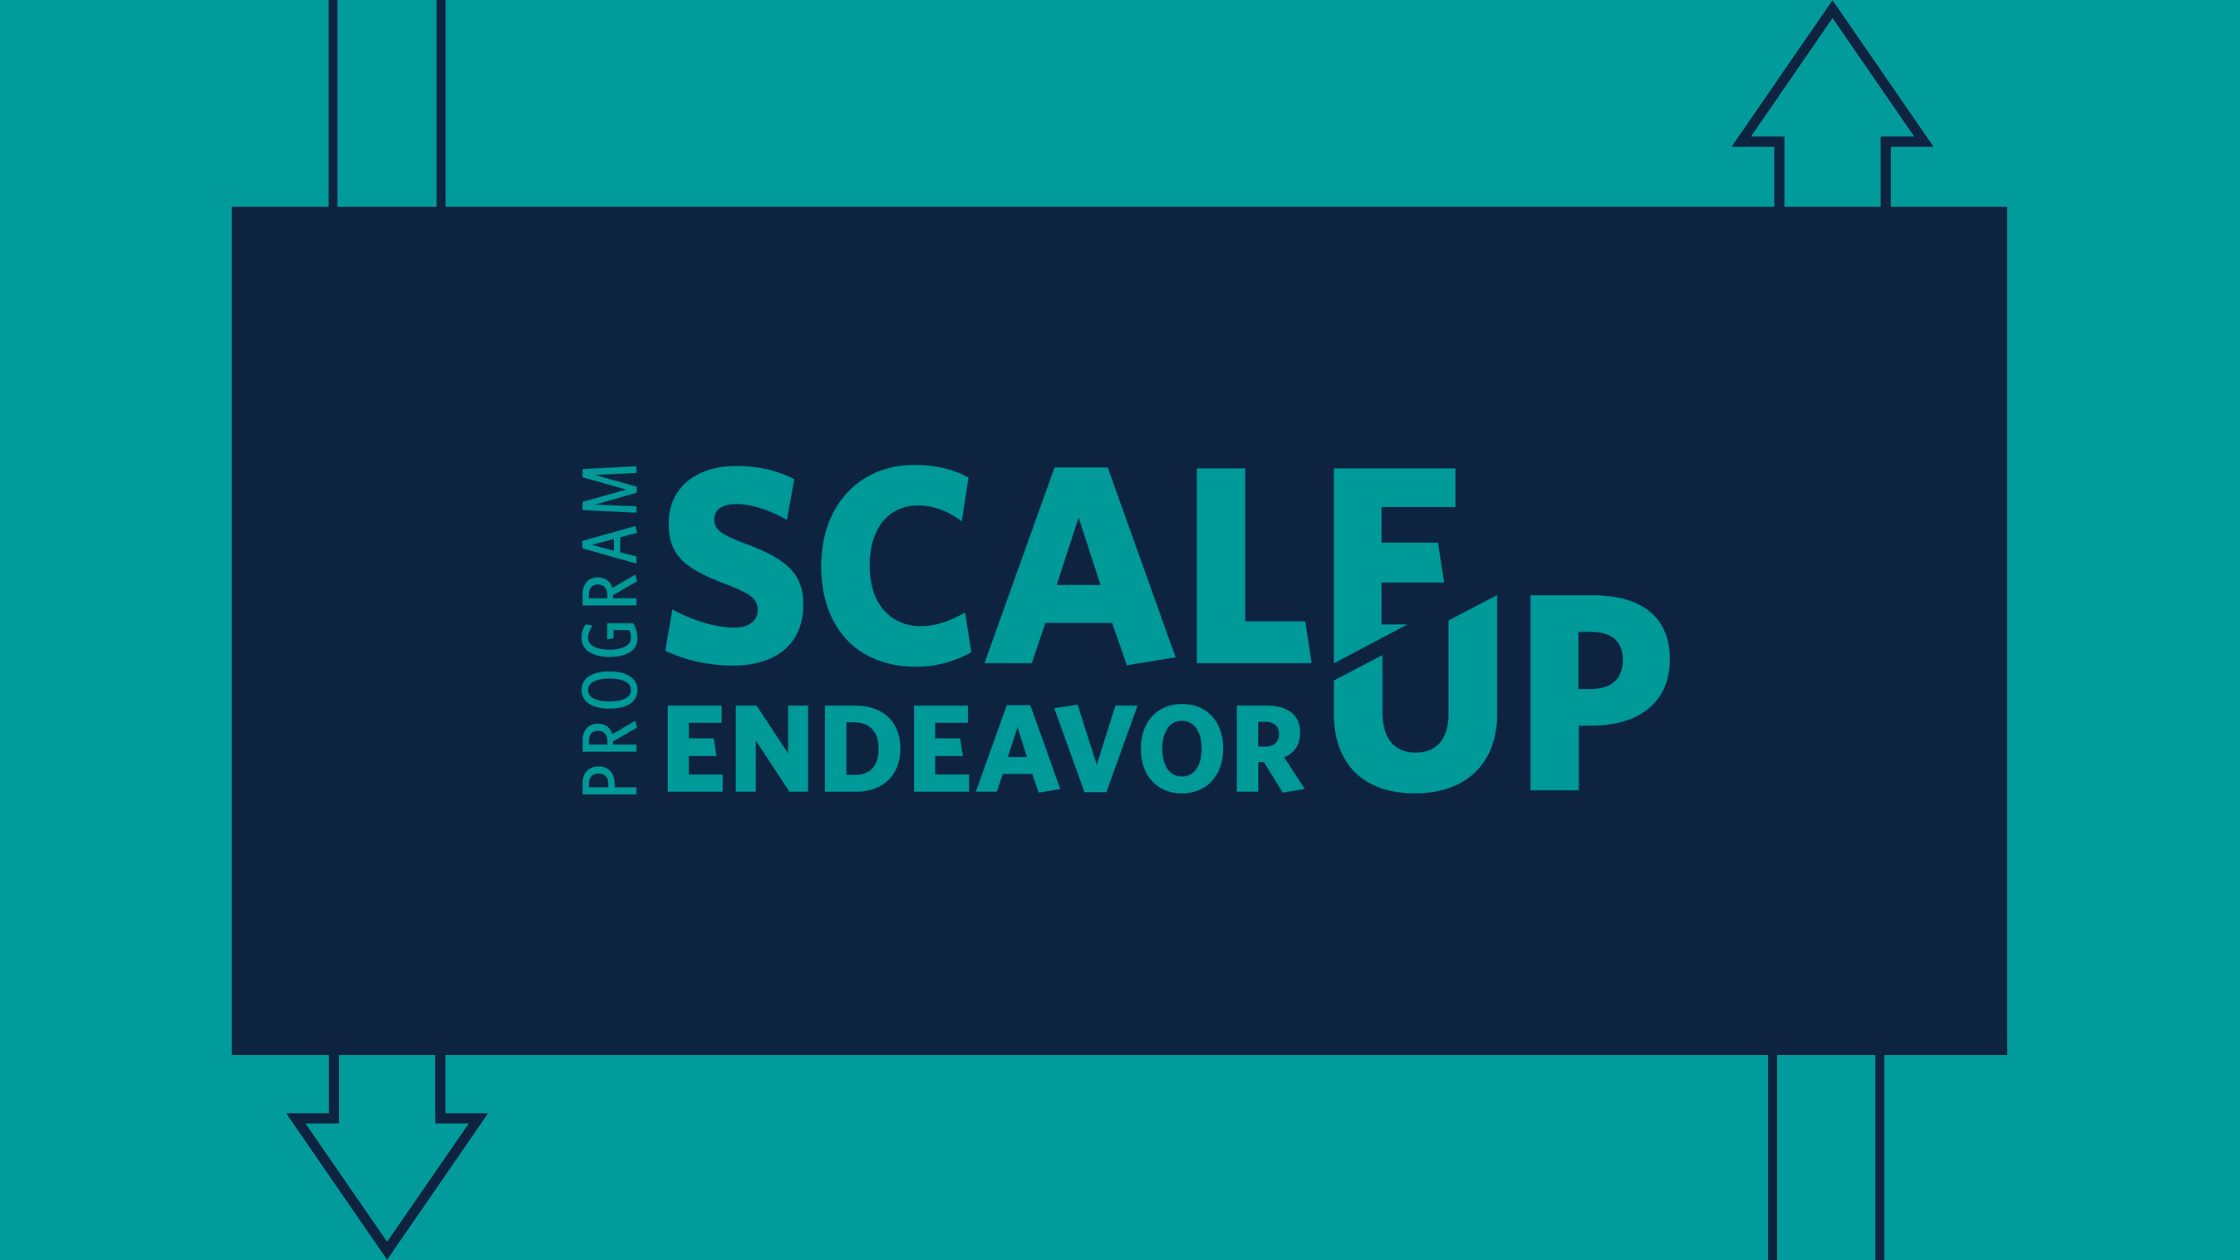 Endeavor Selects and Announces the First Cohort of Scale Up 2021 Entrepreneurs